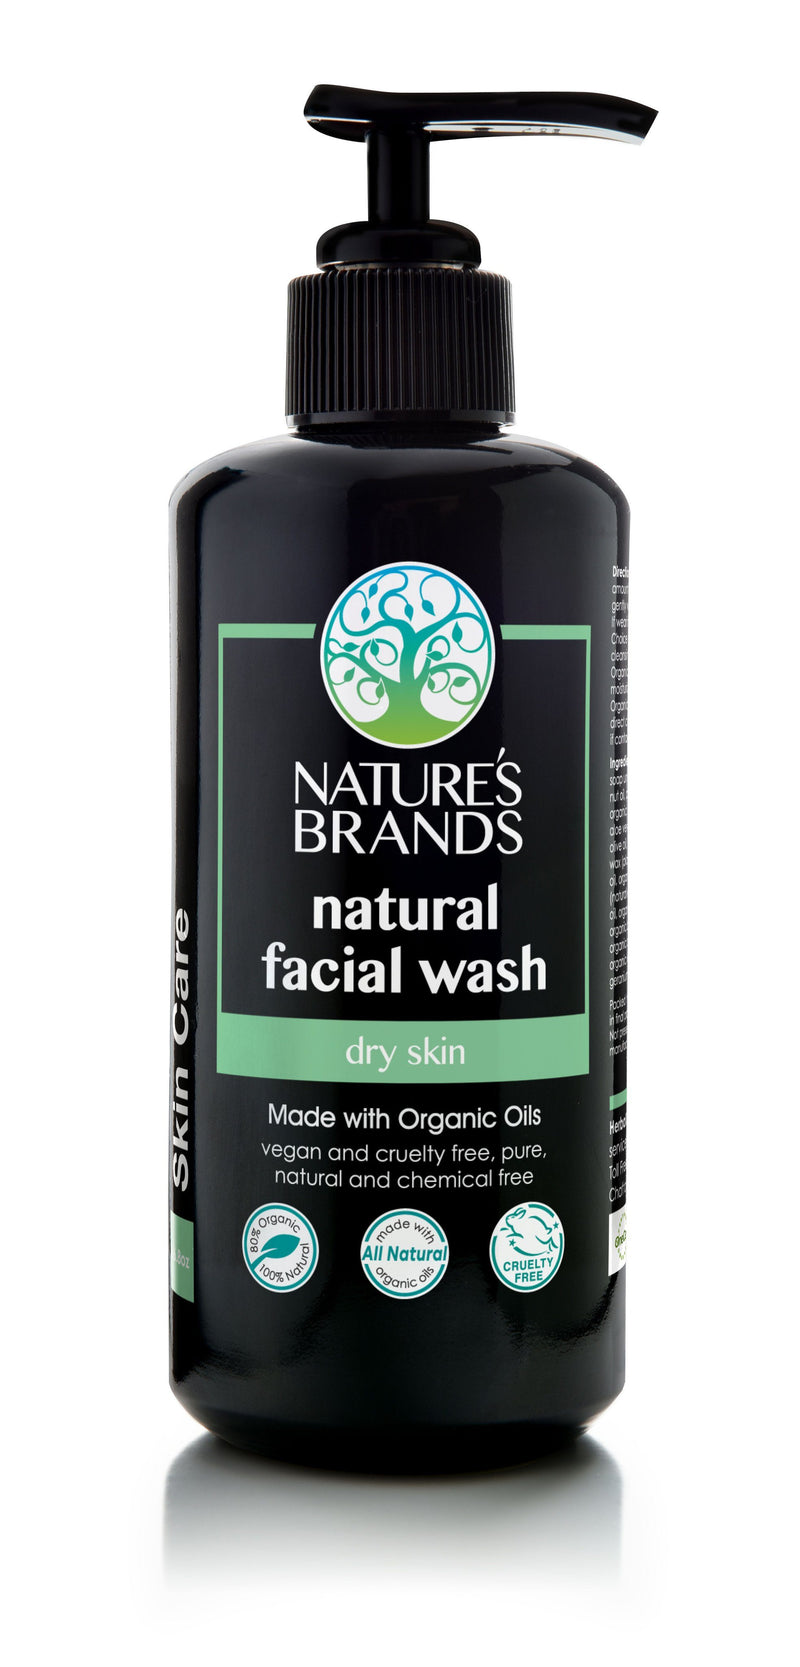 Herbal Choice Mari Natural Facial Wash; Made with Organic - Herbal Choice Mari Natural Facial Wash; Made with Organic - 6.8floz